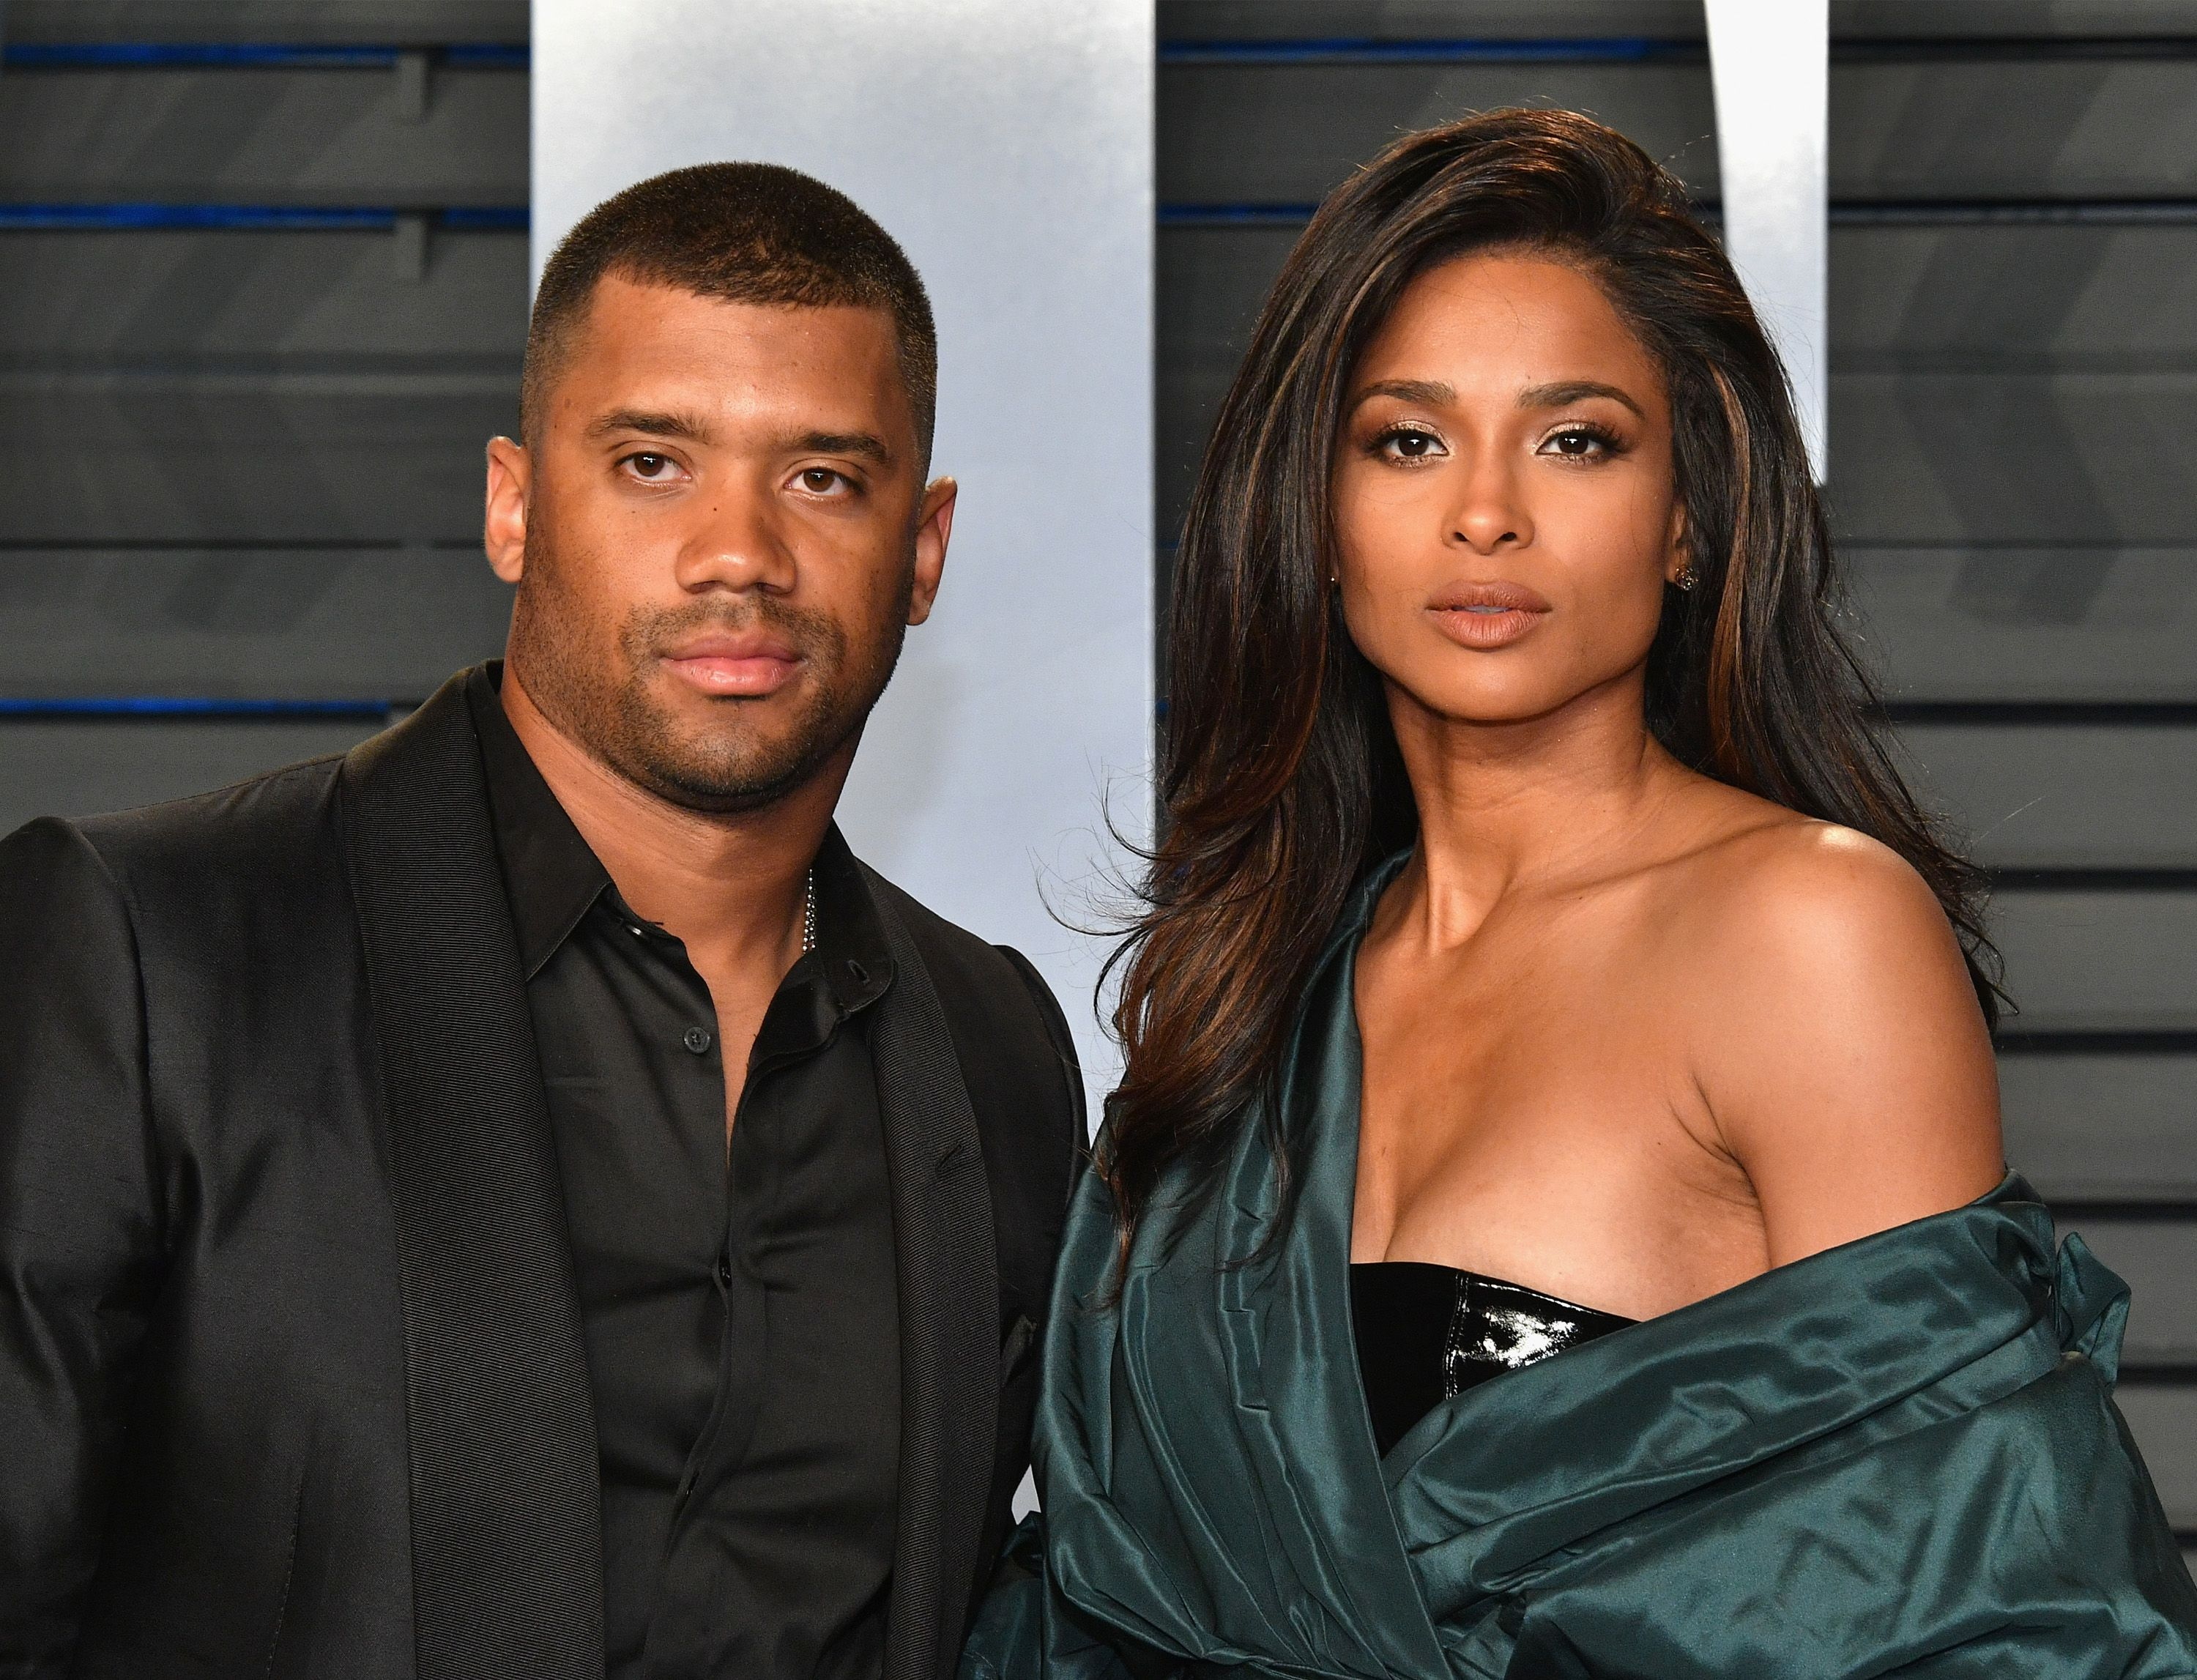 Ciara and Russell Wilson attending the 2018 Vanity Fair Oscar Party on March 4, 2018 in California.  | Photo: Getty Images